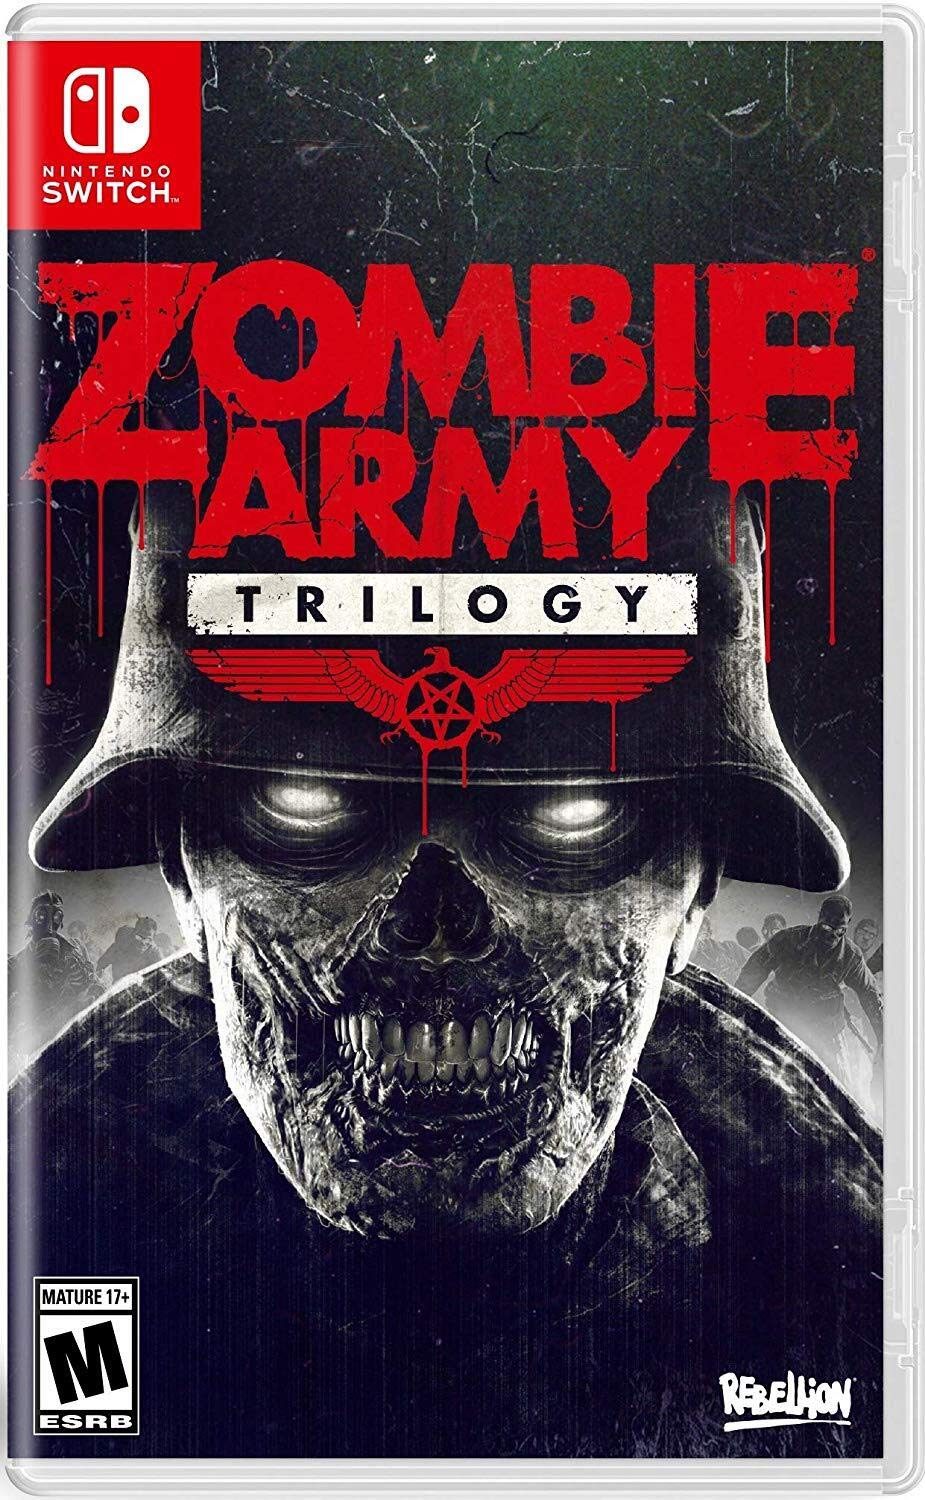 Zombie Army Trilogy for Nintendo Switch [USA]: Amazon.es: Ui Entertainment, U&i Entertainment: Cine y Series TV